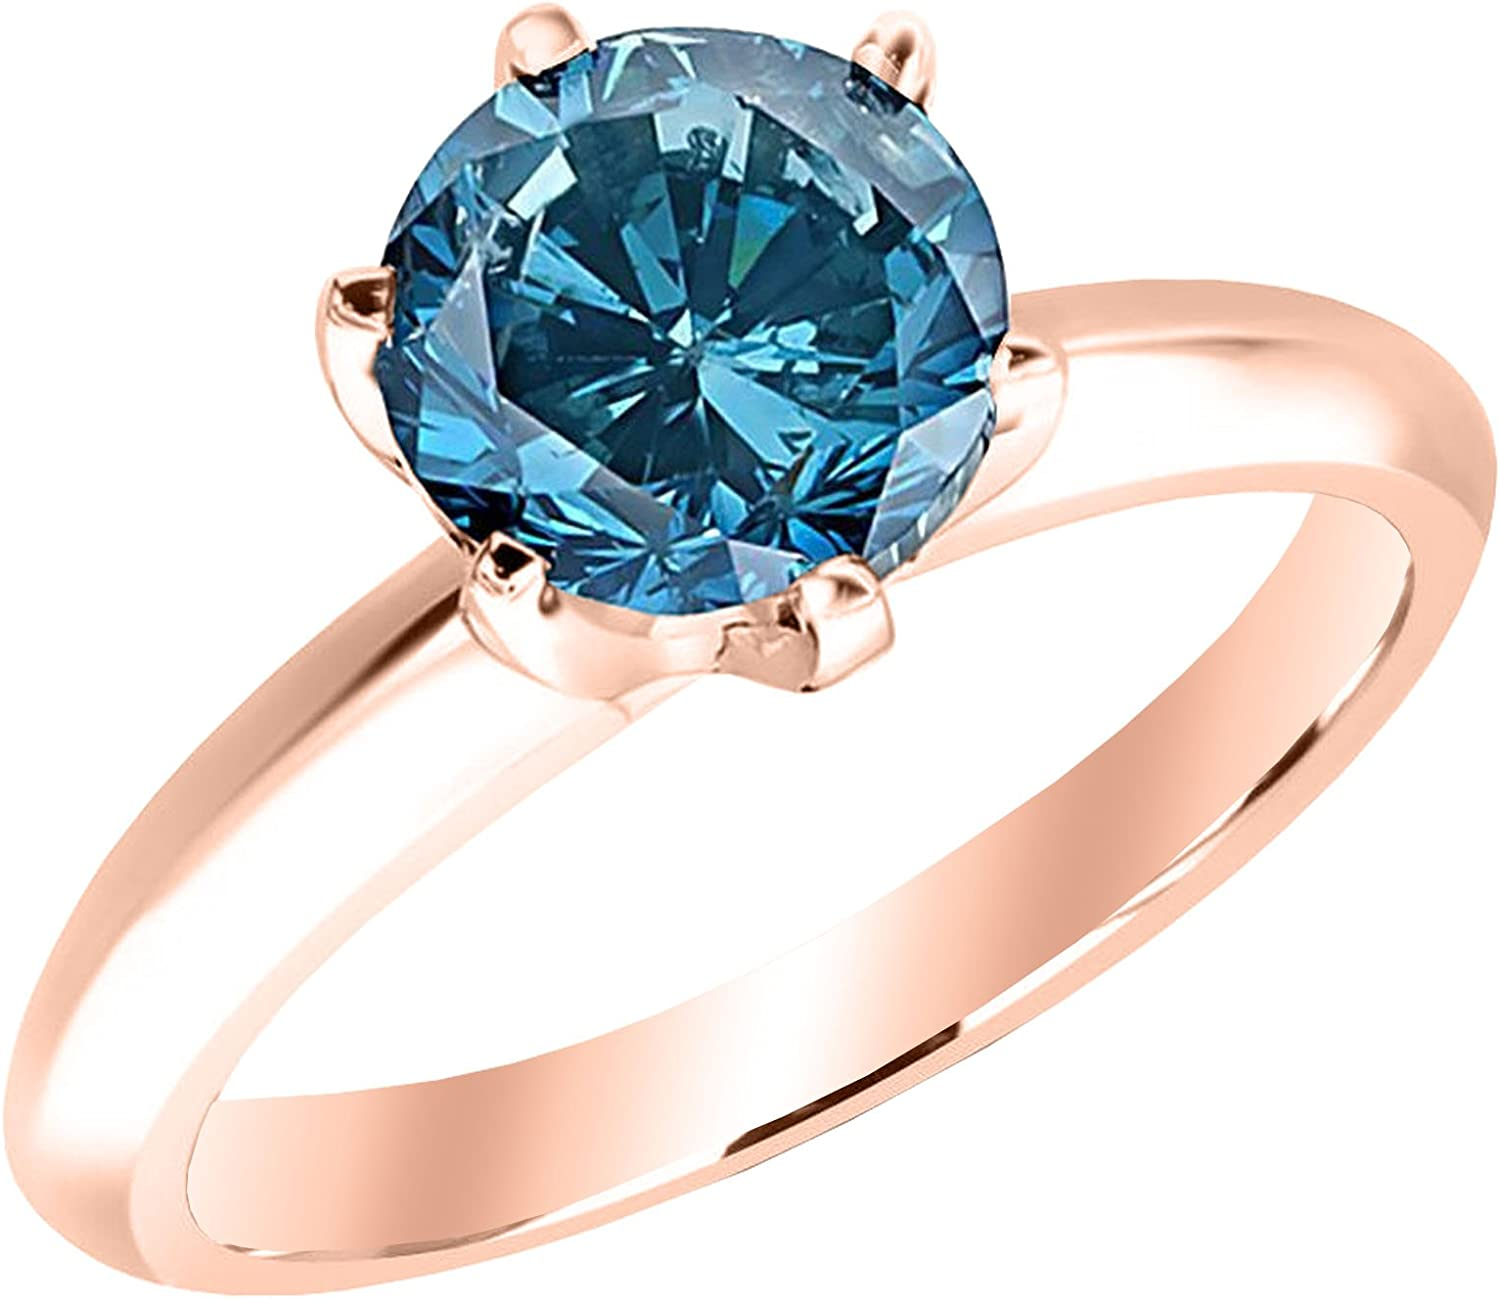 1 1 2 1 5 Carat 14k Rose Gold Round Blue Diamond Solitaire Ring Aaa Quality Amazon Com